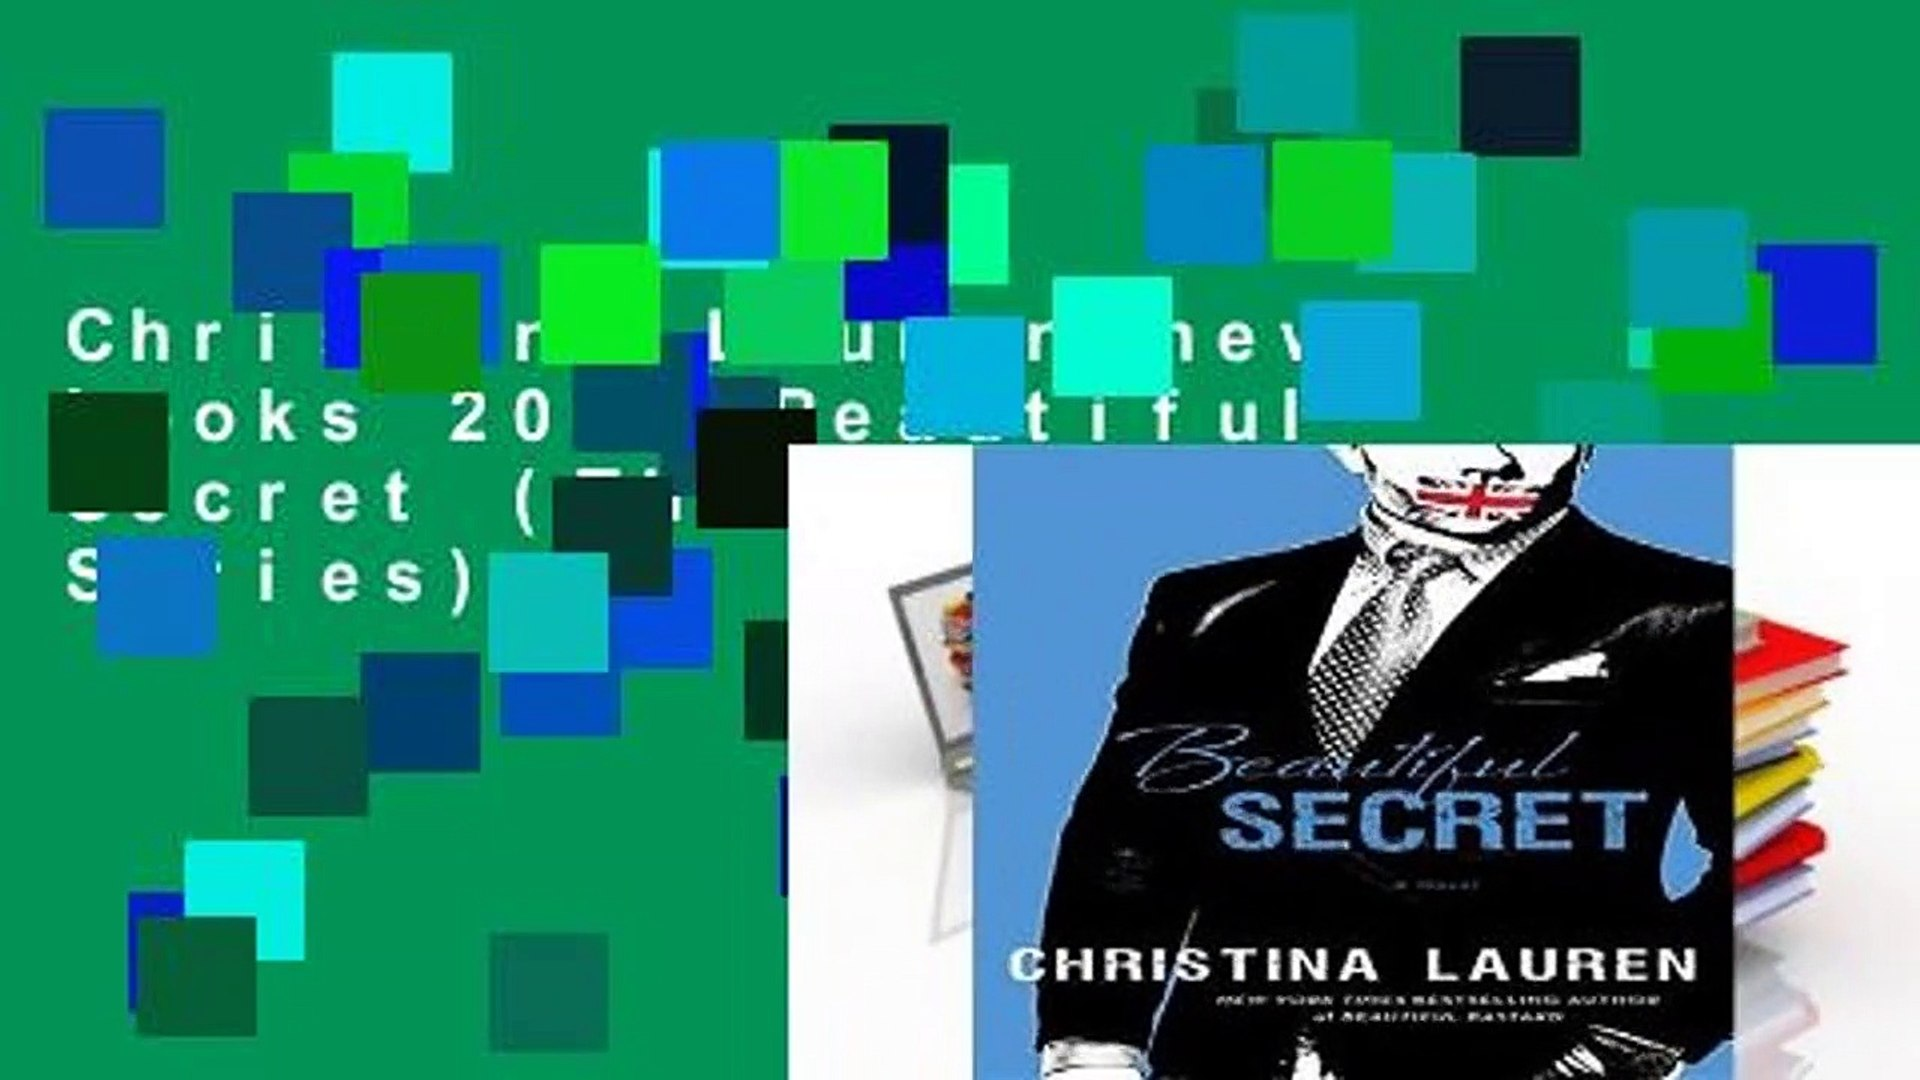 Christina Lauren new books 2018 Beautiful Secret (The Beautiful Series)